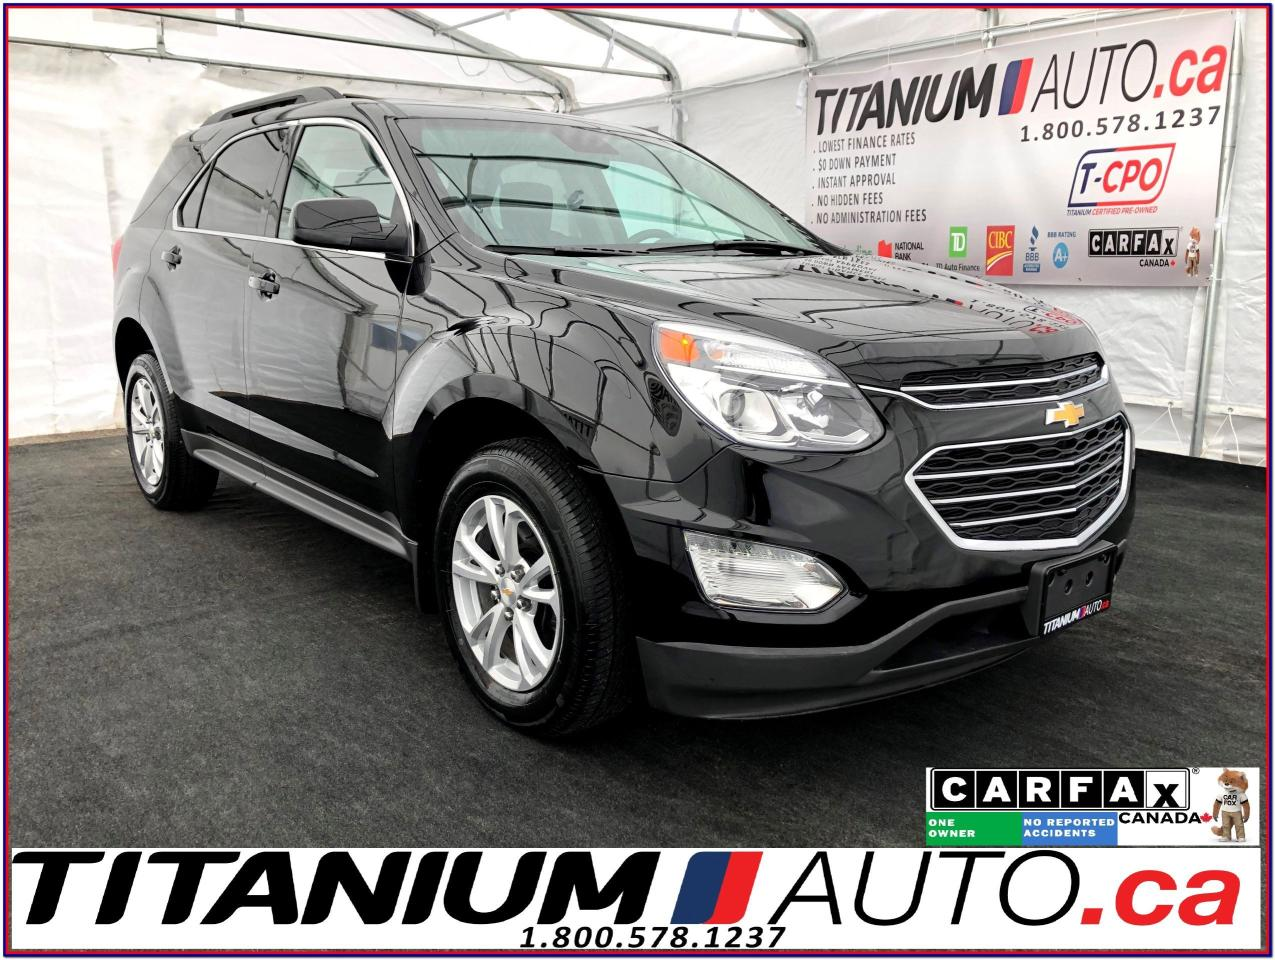 medium resolution of  img src https images carpages ca inventory 3313855 99657788 w 640 h 480 q 75 s a086344cd2166aba9716234a324638c3 alt 2017 chevrolet equinox